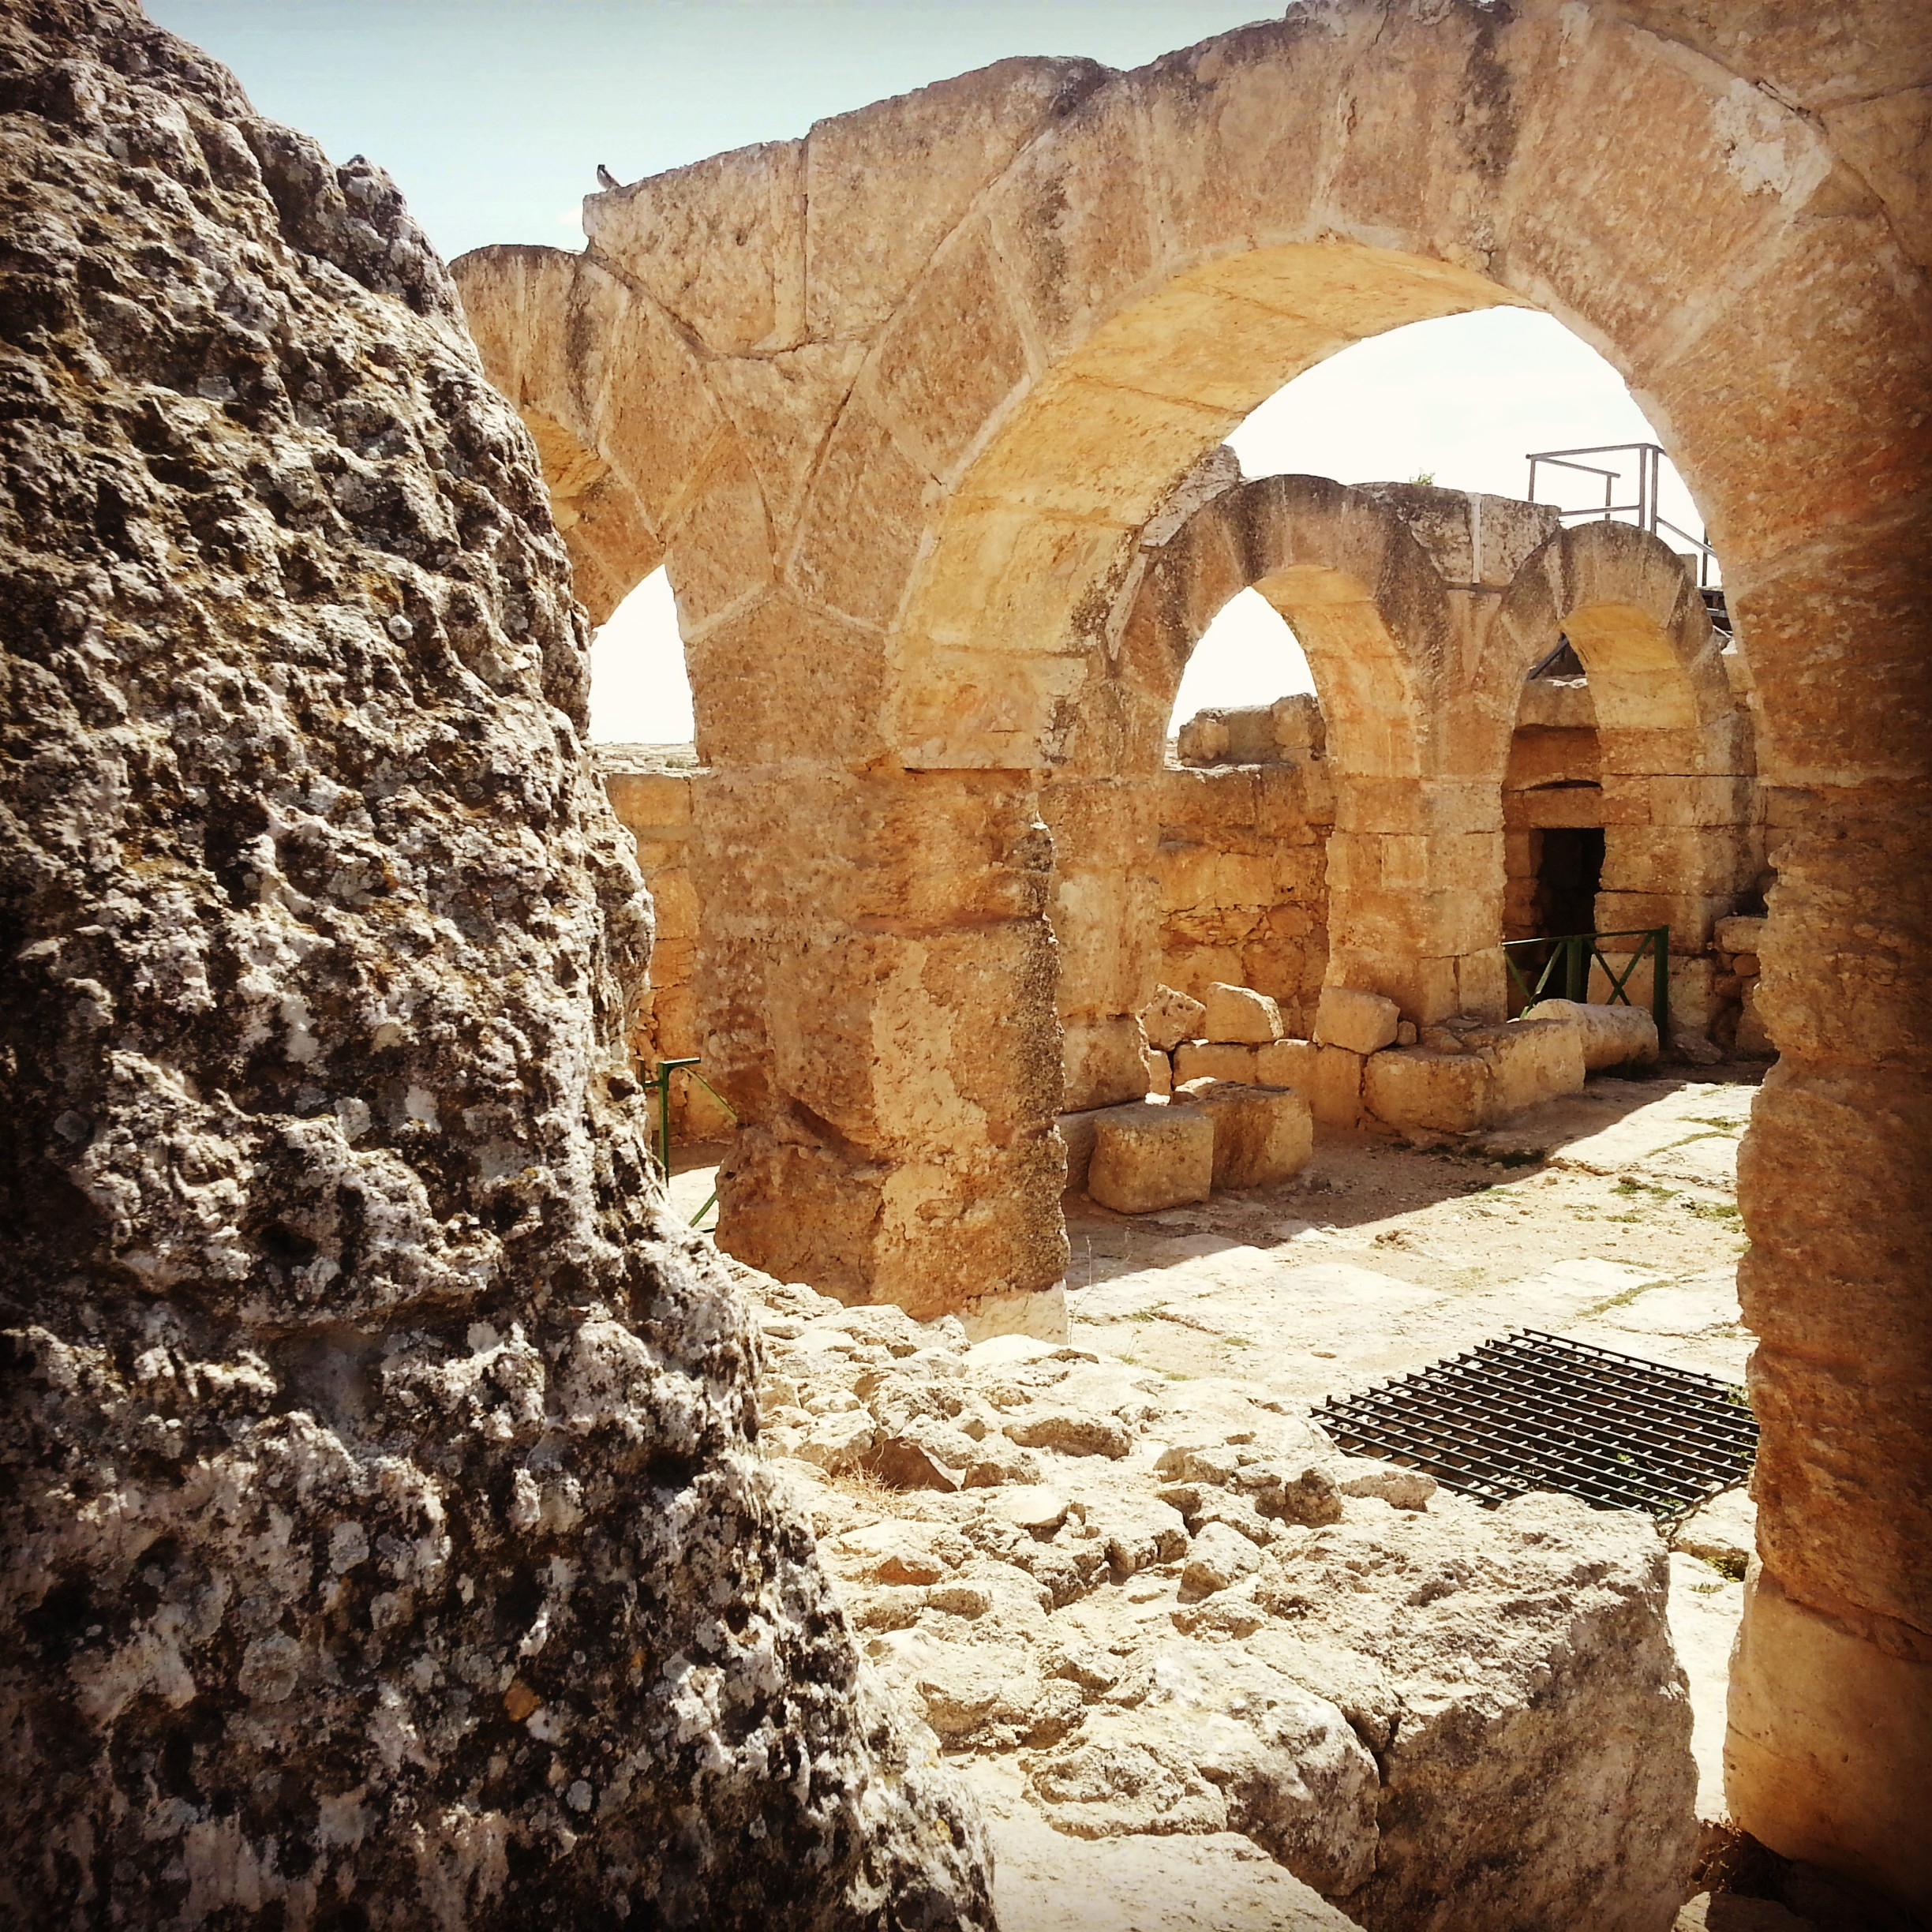 Byzantine era synagogue at Susya